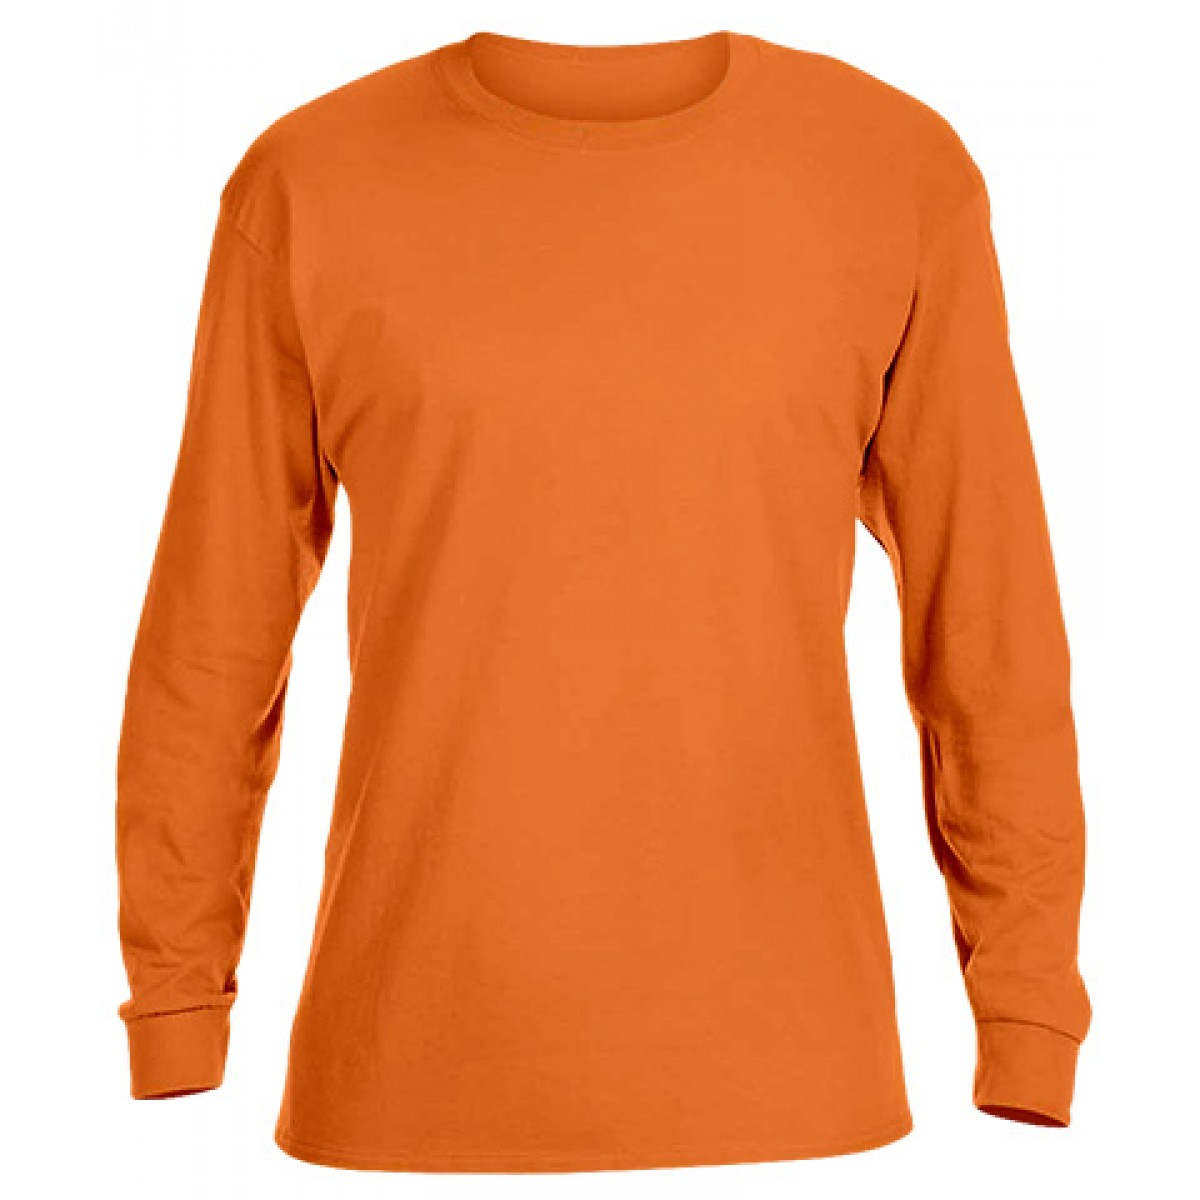 Basic Long Sleeve Crew Neck -Orange-S